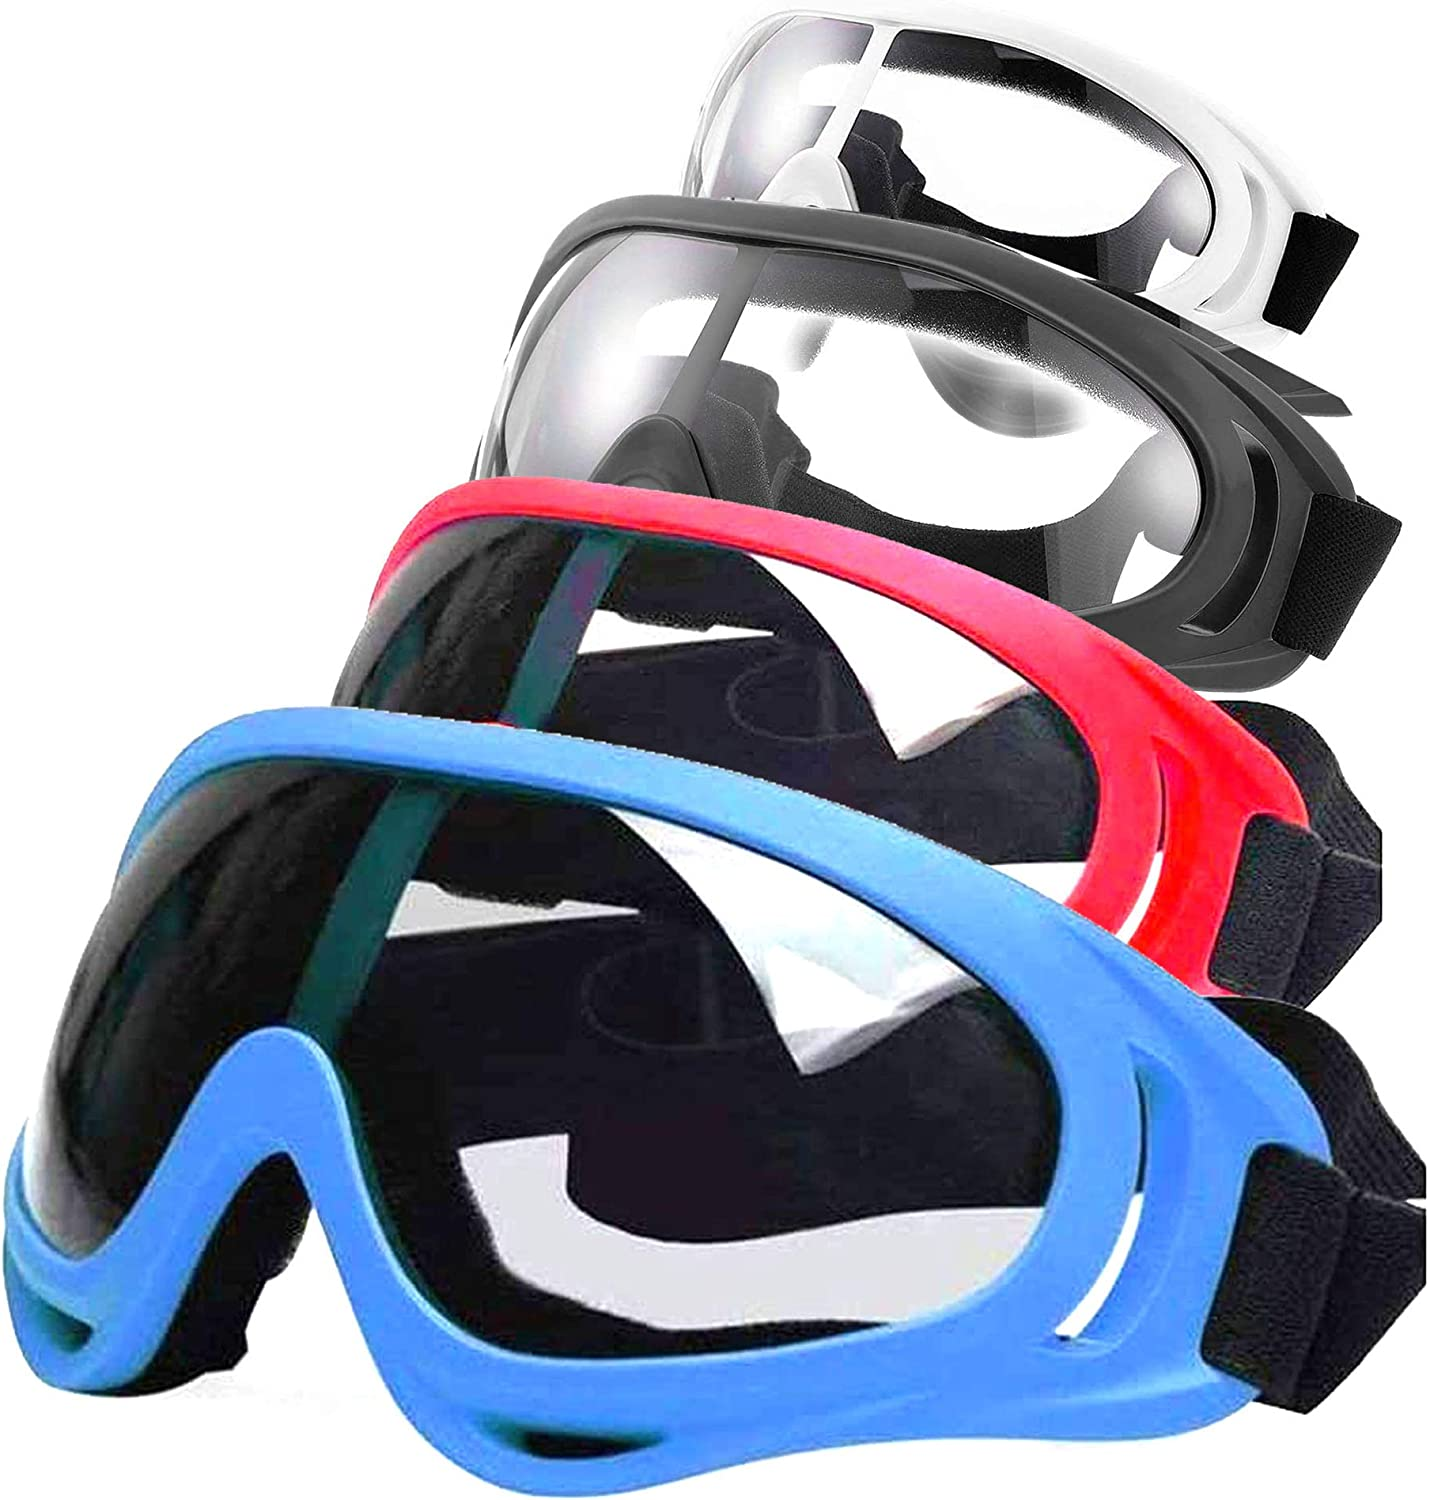 Fstop Labs 4 Packs Safety Goggles Glasses with Wind Resistance and Protection Perfect for Nerf Foam Blasters Guns N-Strike Elite Series